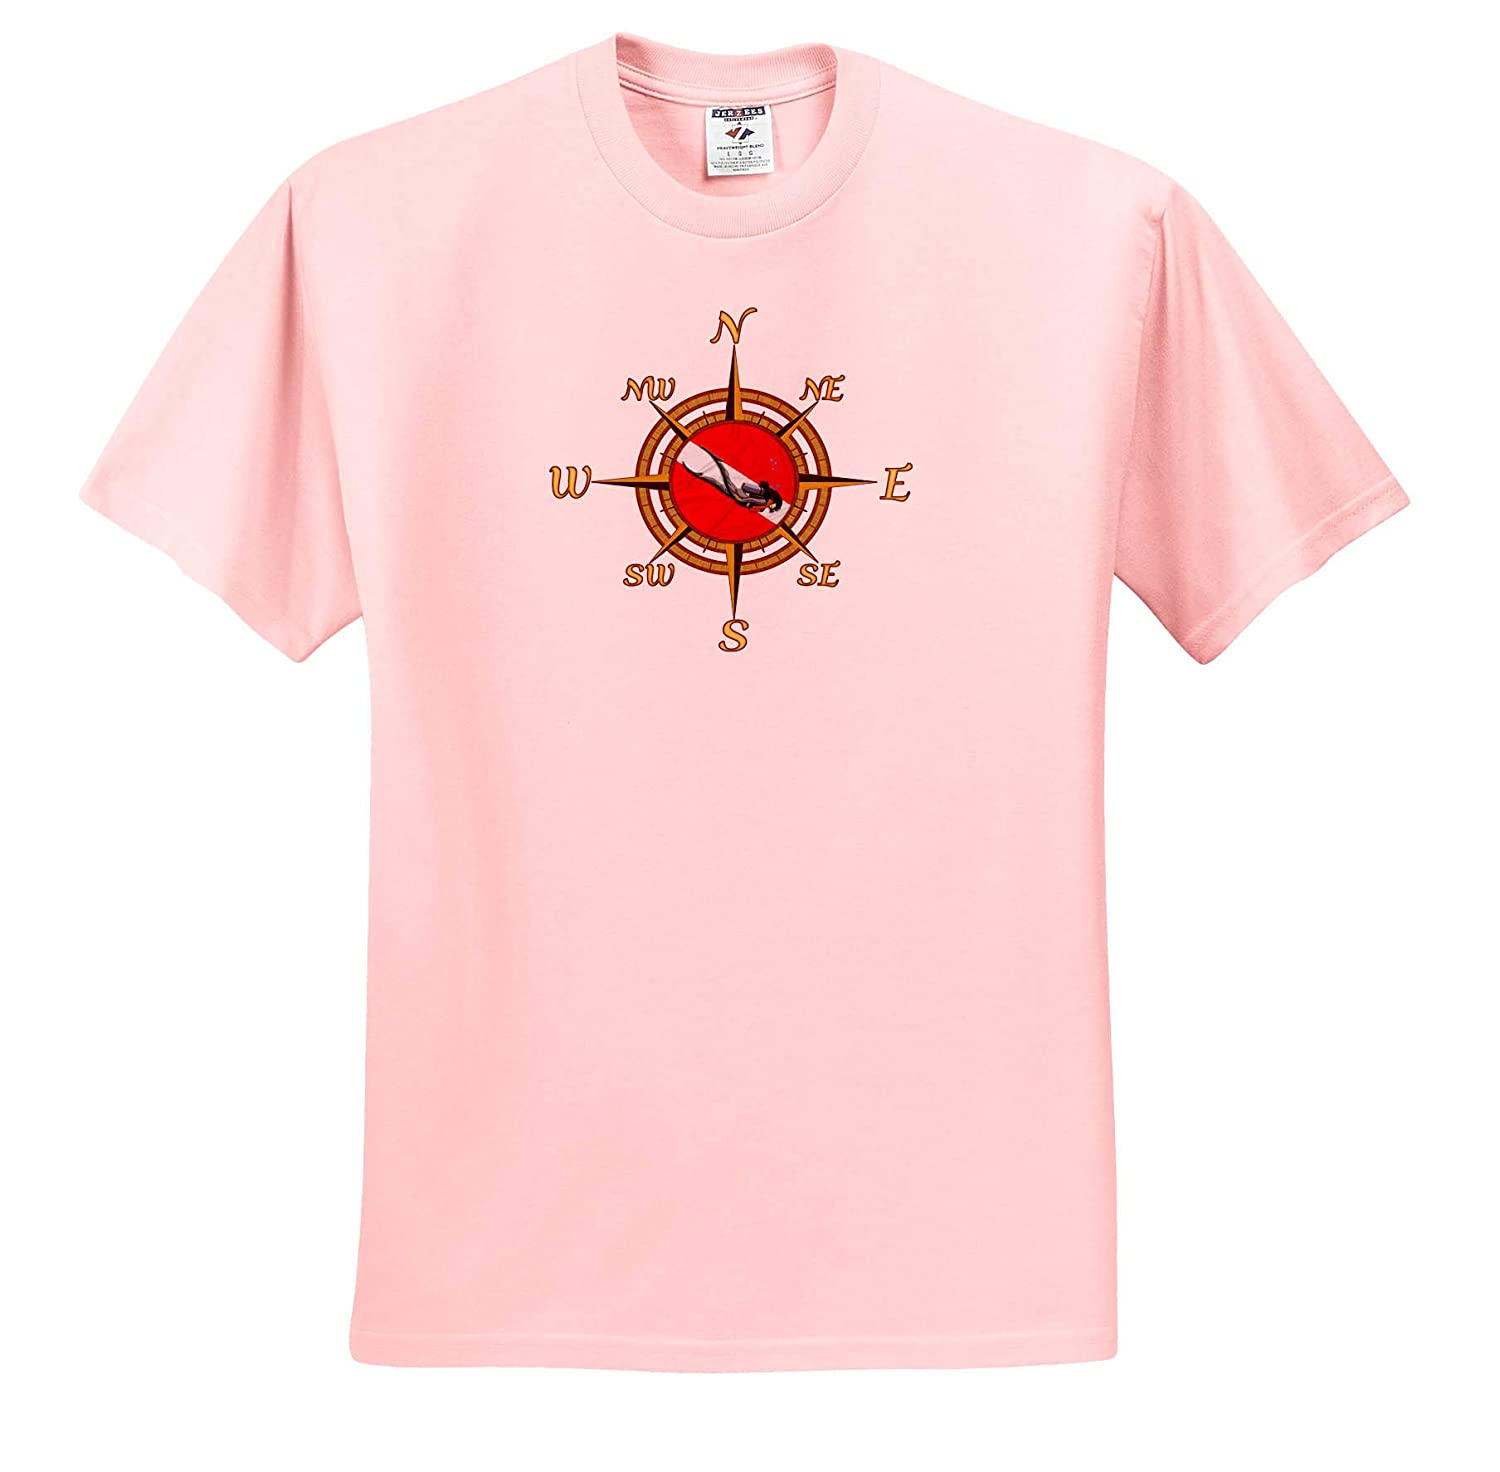 Scuba 3dRose Macdonald Creative Studios - T-Shirts A Compass Rose Inset with a Scuba Dive Flag and Scuba Diver